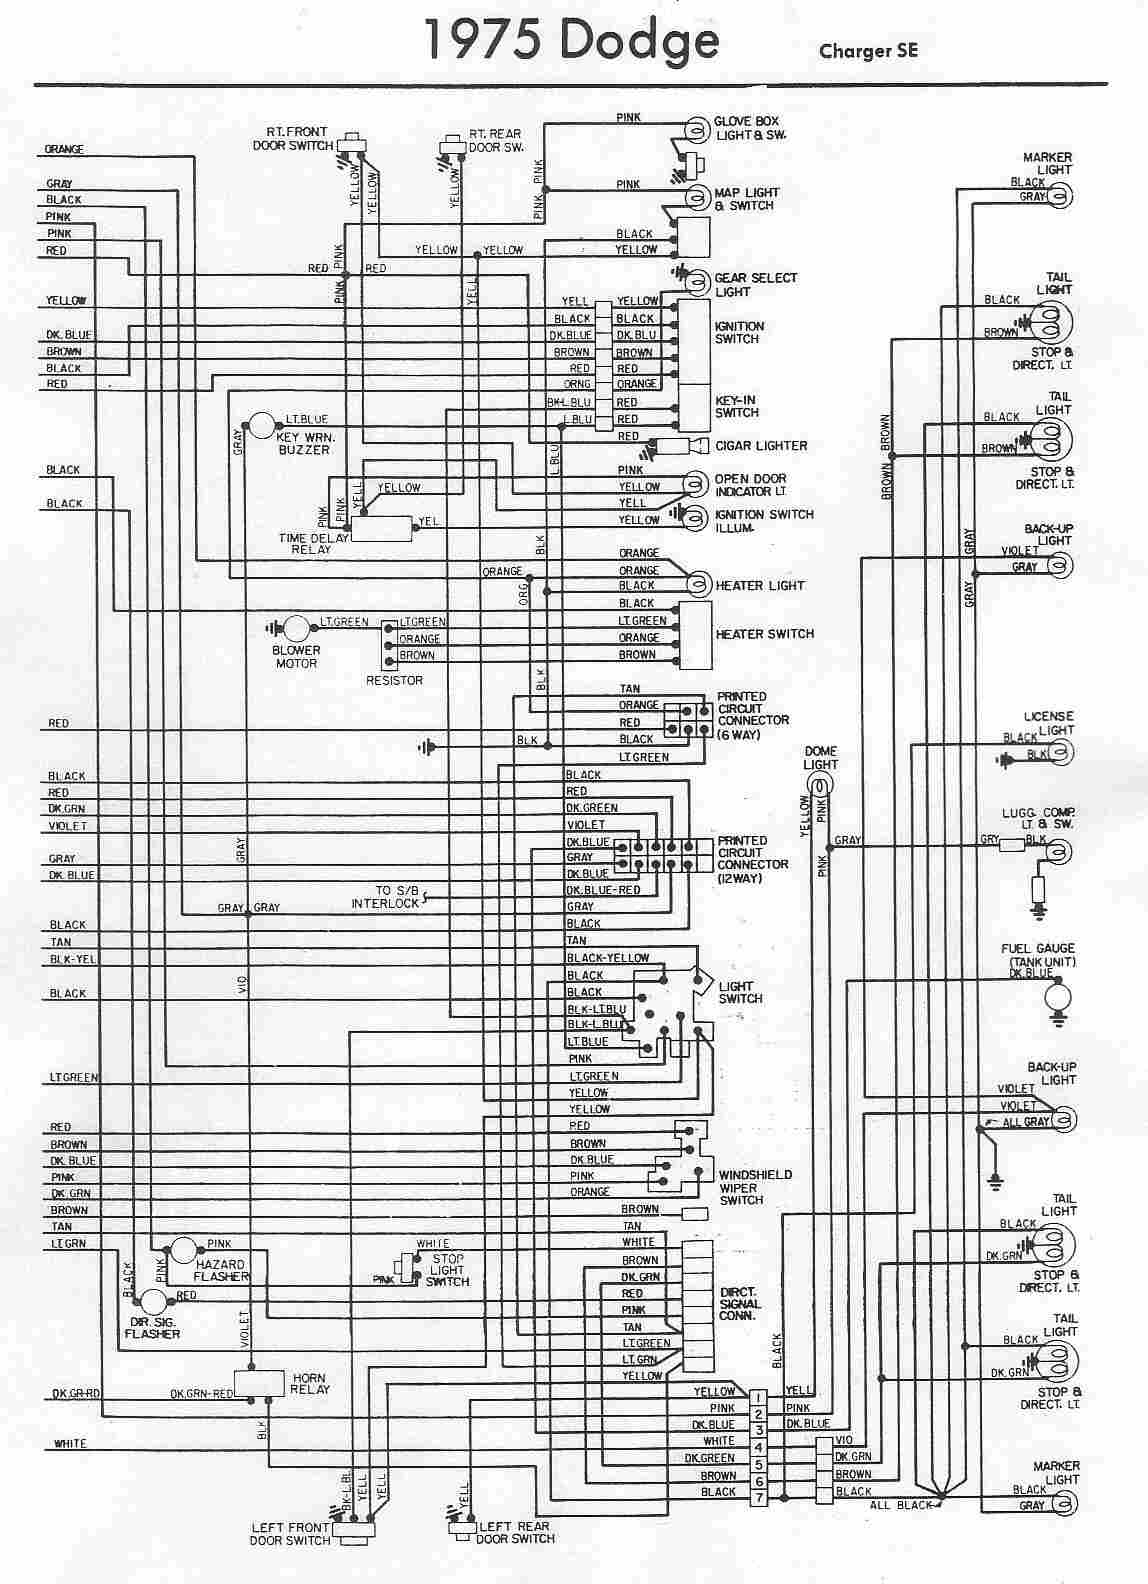 electrical wiring diagram of 1975 dodge charger?t=1508404771 dodge car manuals, wiring diagrams pdf & fault codes daimler sp250 wiring diagram at readyjetset.co